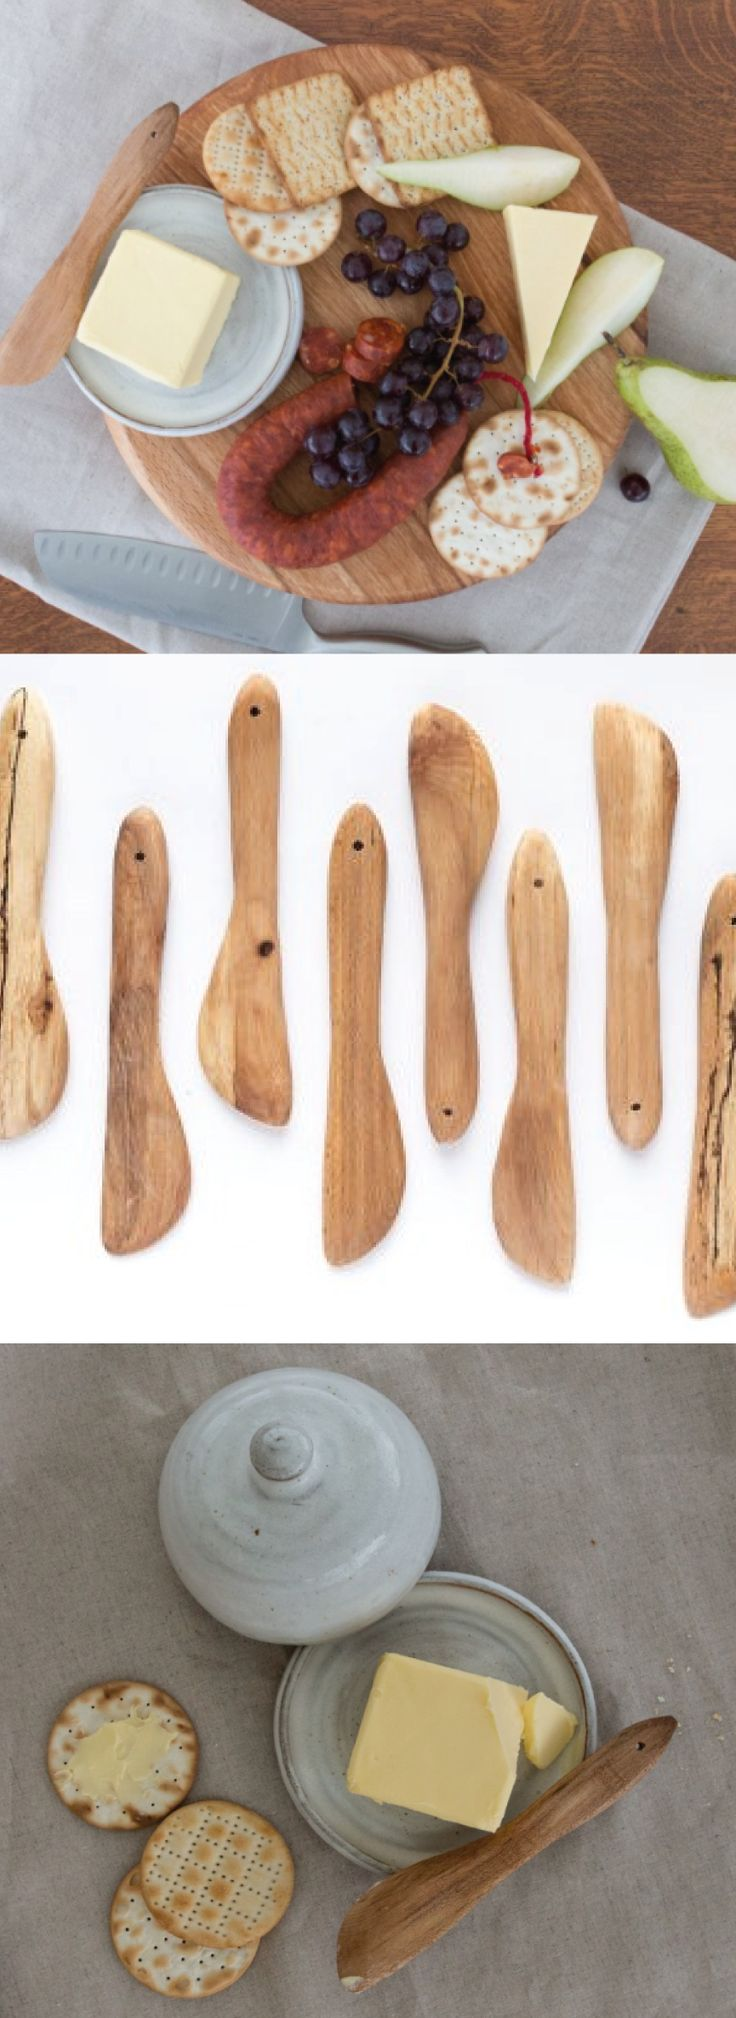 Summer Sale Now On. Shop now for Scandinavian style tableware at TheMakerPlace.co.uk, the online destination for handcrafted luxury homeware and gifts direct from the maker. Artisan crafted oak chopping board, was £80.00, now £68.00, Handcrafted Swedish Butter Knife, was £8.00, now £6.80. Hand thrown Stoneware Butter Dish, was £35.00, now £30.00. PLUS here's an extra 10% off the sale price with code WELCOME10 :-) Sale ends 10th July 2016.